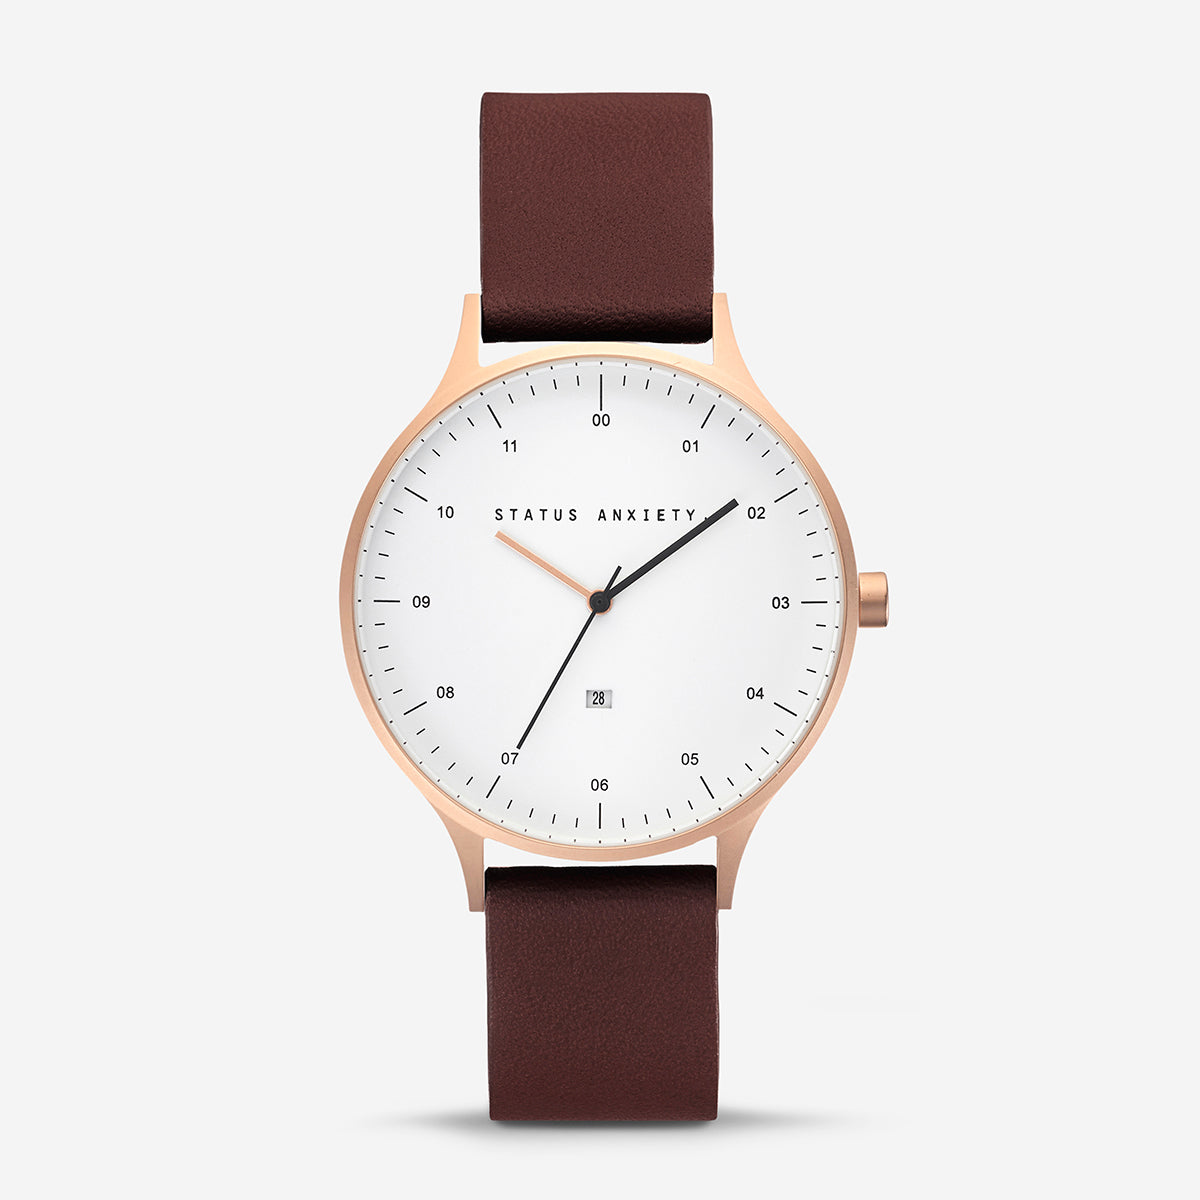 INERTIA - brushed copper / white face / brown strap